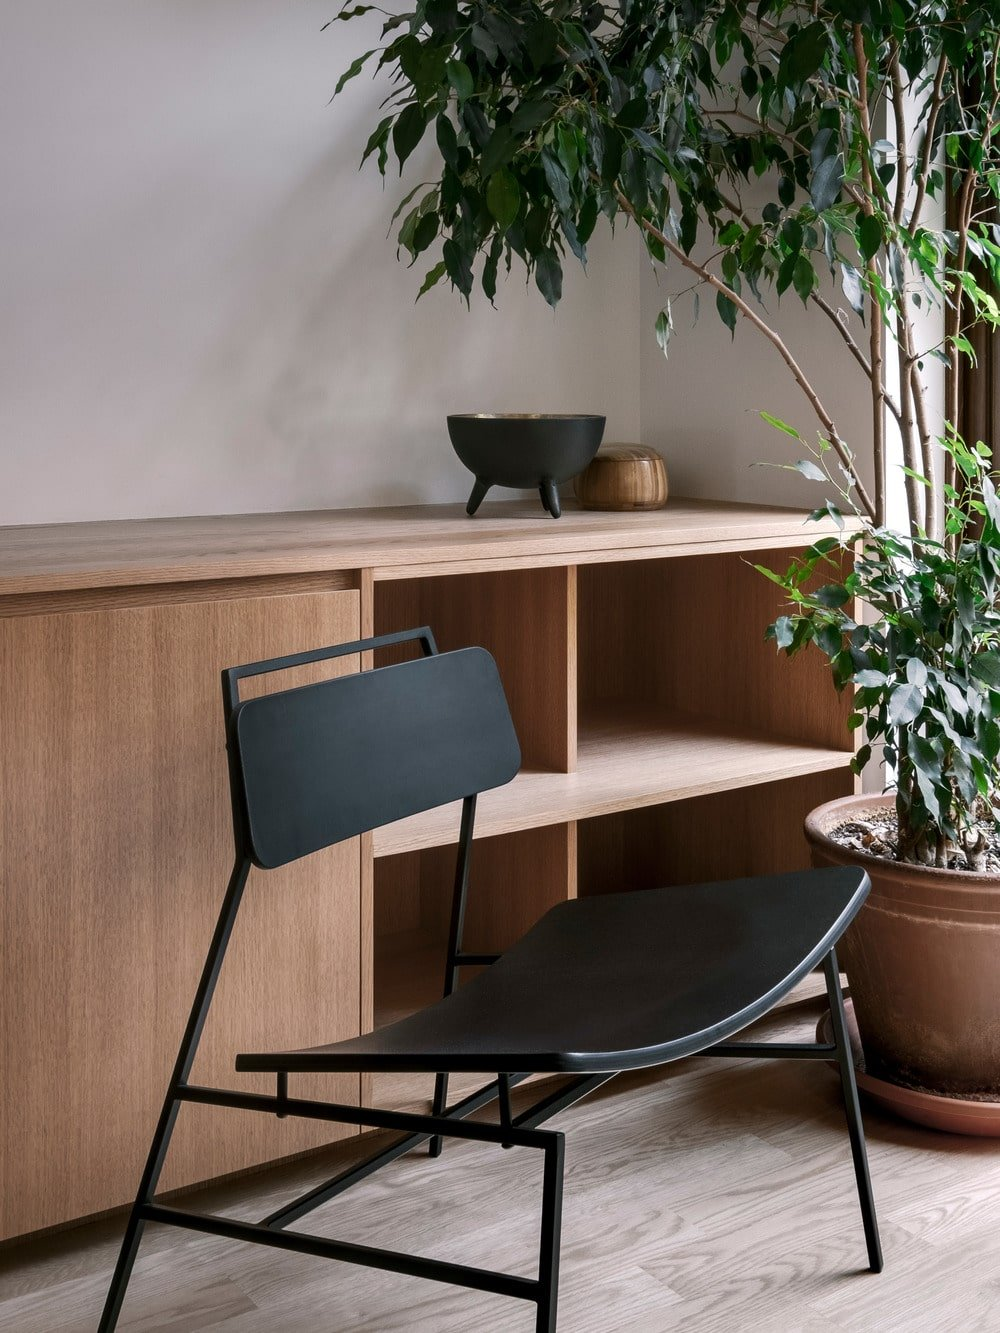 This is a close look at the very edge of the wooden structure that extends from the built-in wooden sofa adorned with a potted plant.